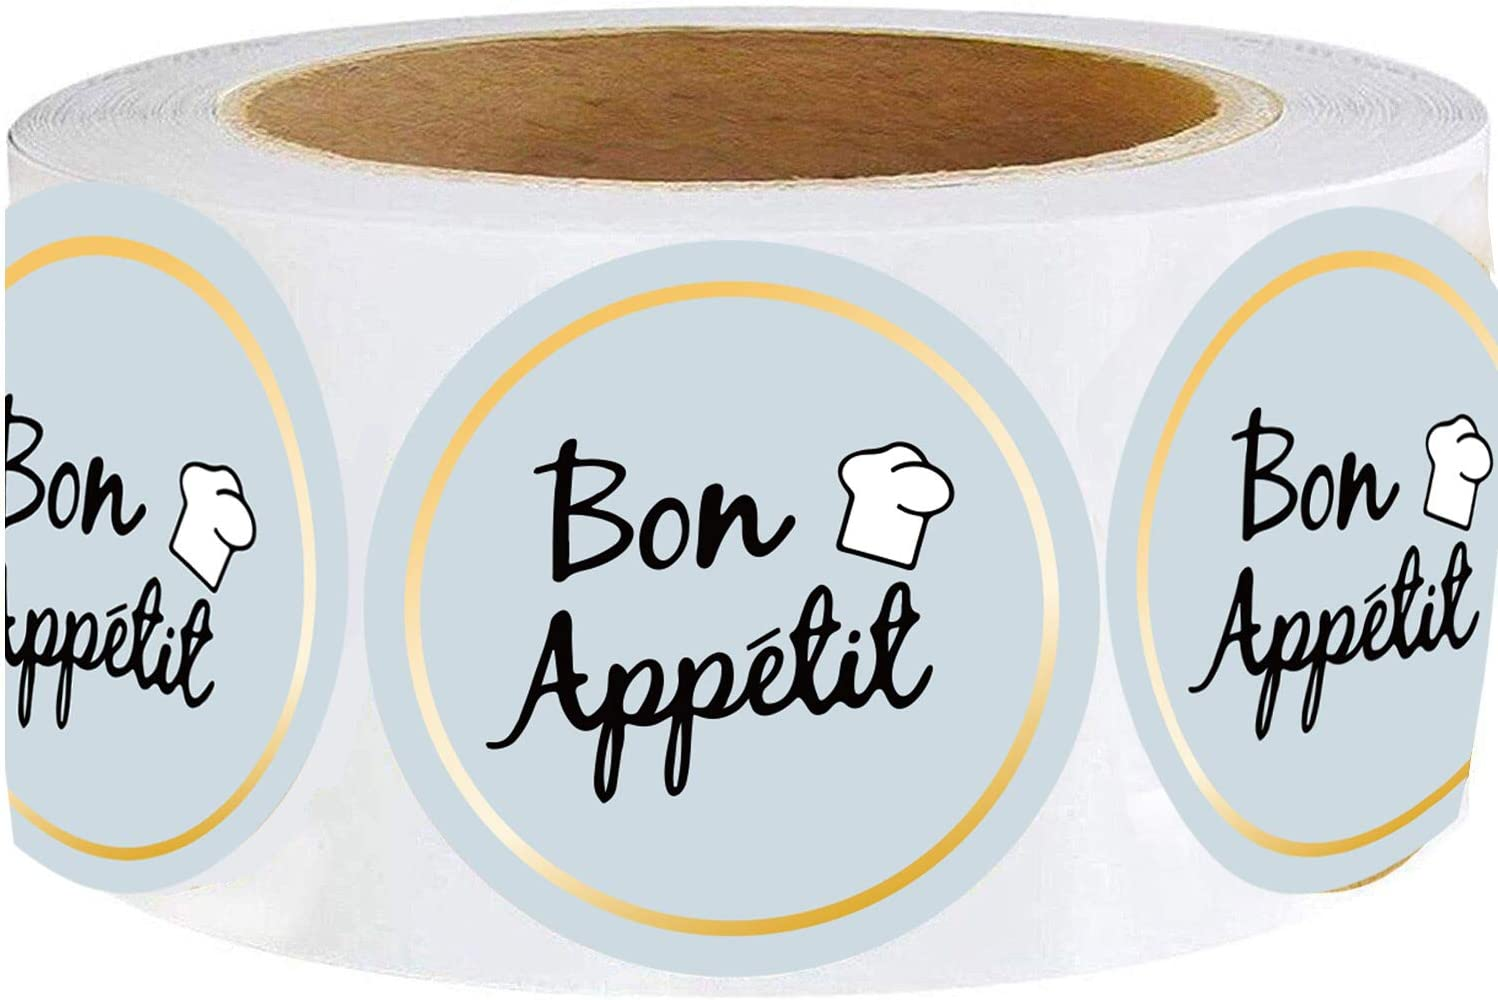 Besttile Party Bon Appetit Stickers Roll,2Inch,Food Service and Catering Business Lables,Bakery Packaging Stickers,Waterproof Bon Appetit Stickers,Decorative Sealing Stickers